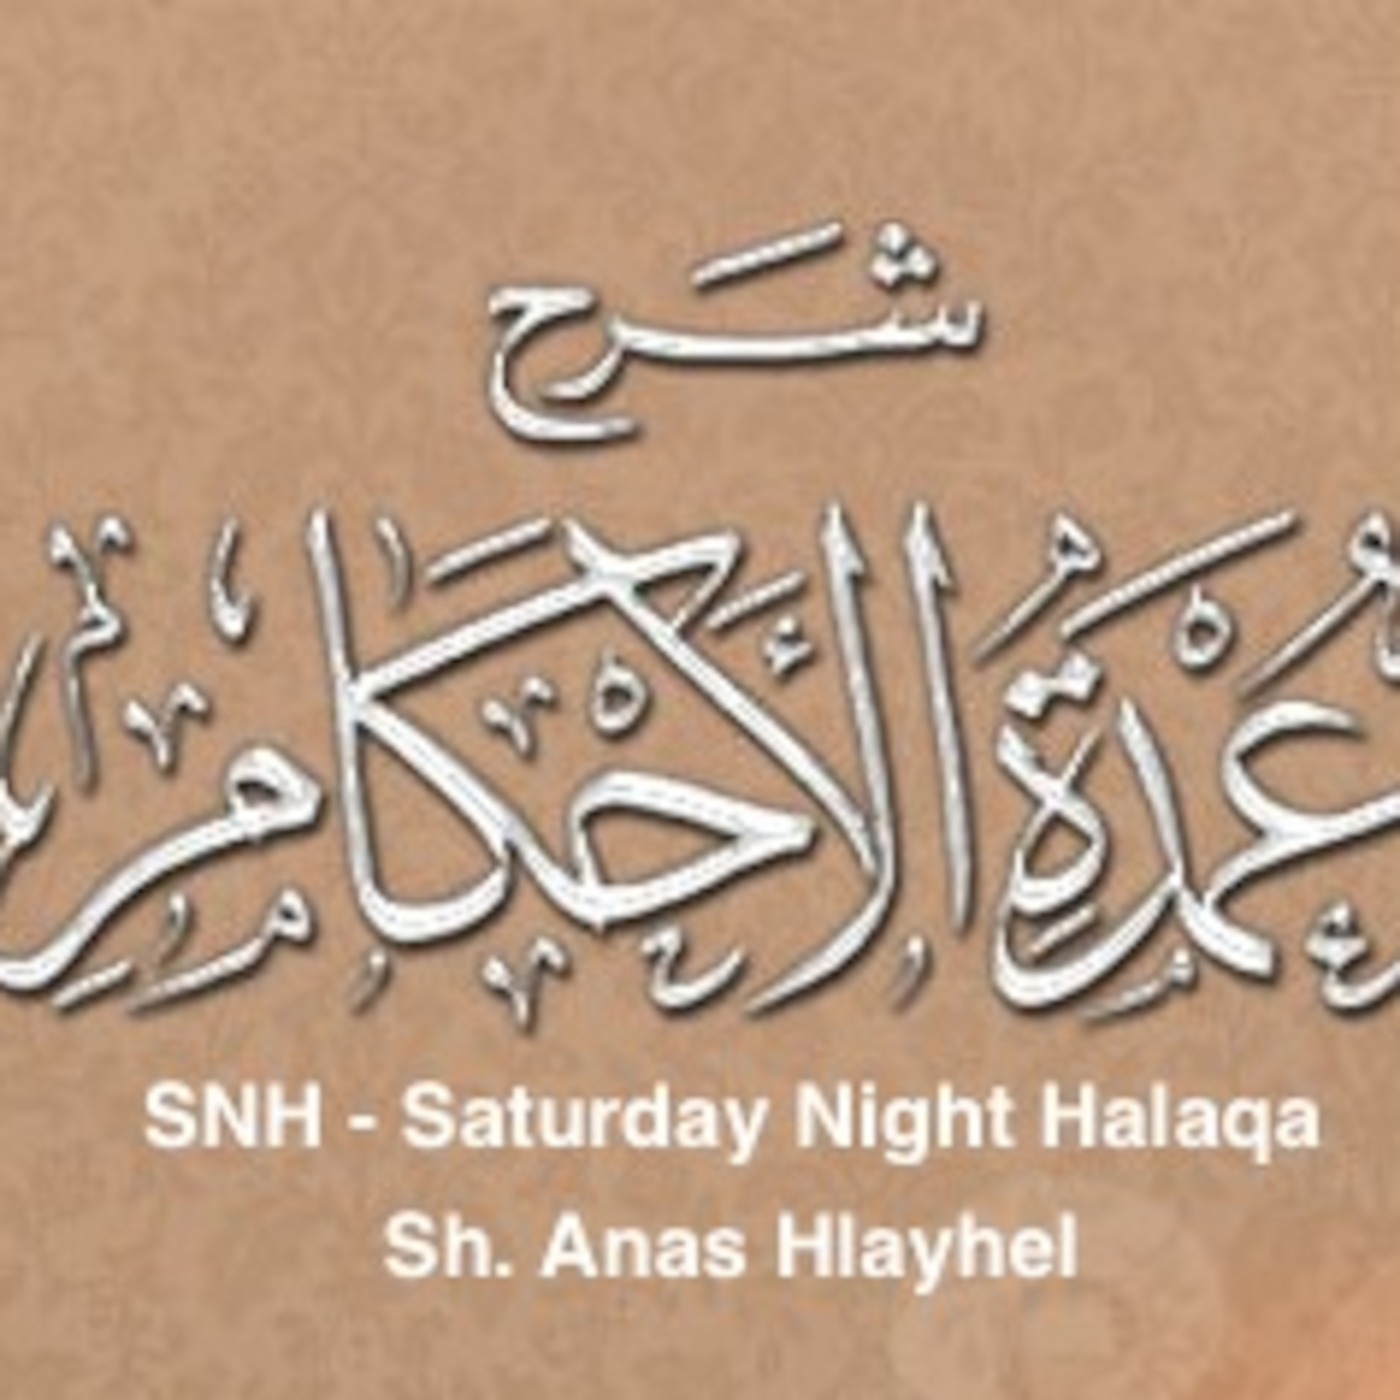 SNH - Saturday Night Halaqa